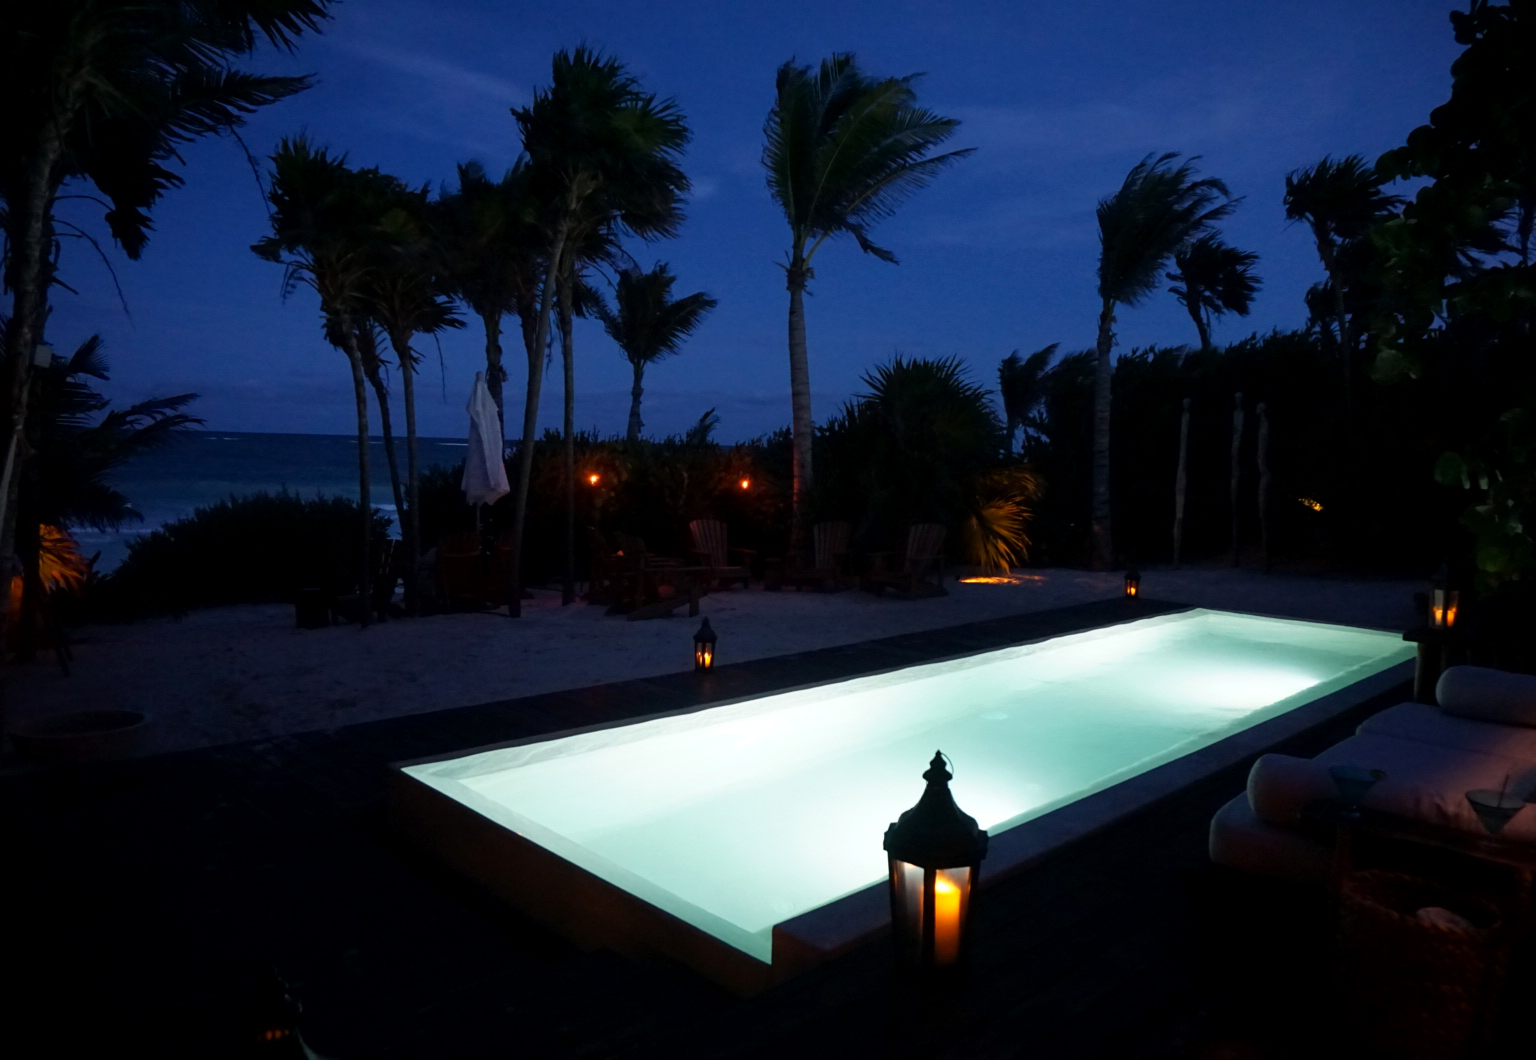 Just after sunset at the Casa Catarena in Tulum, Mexico